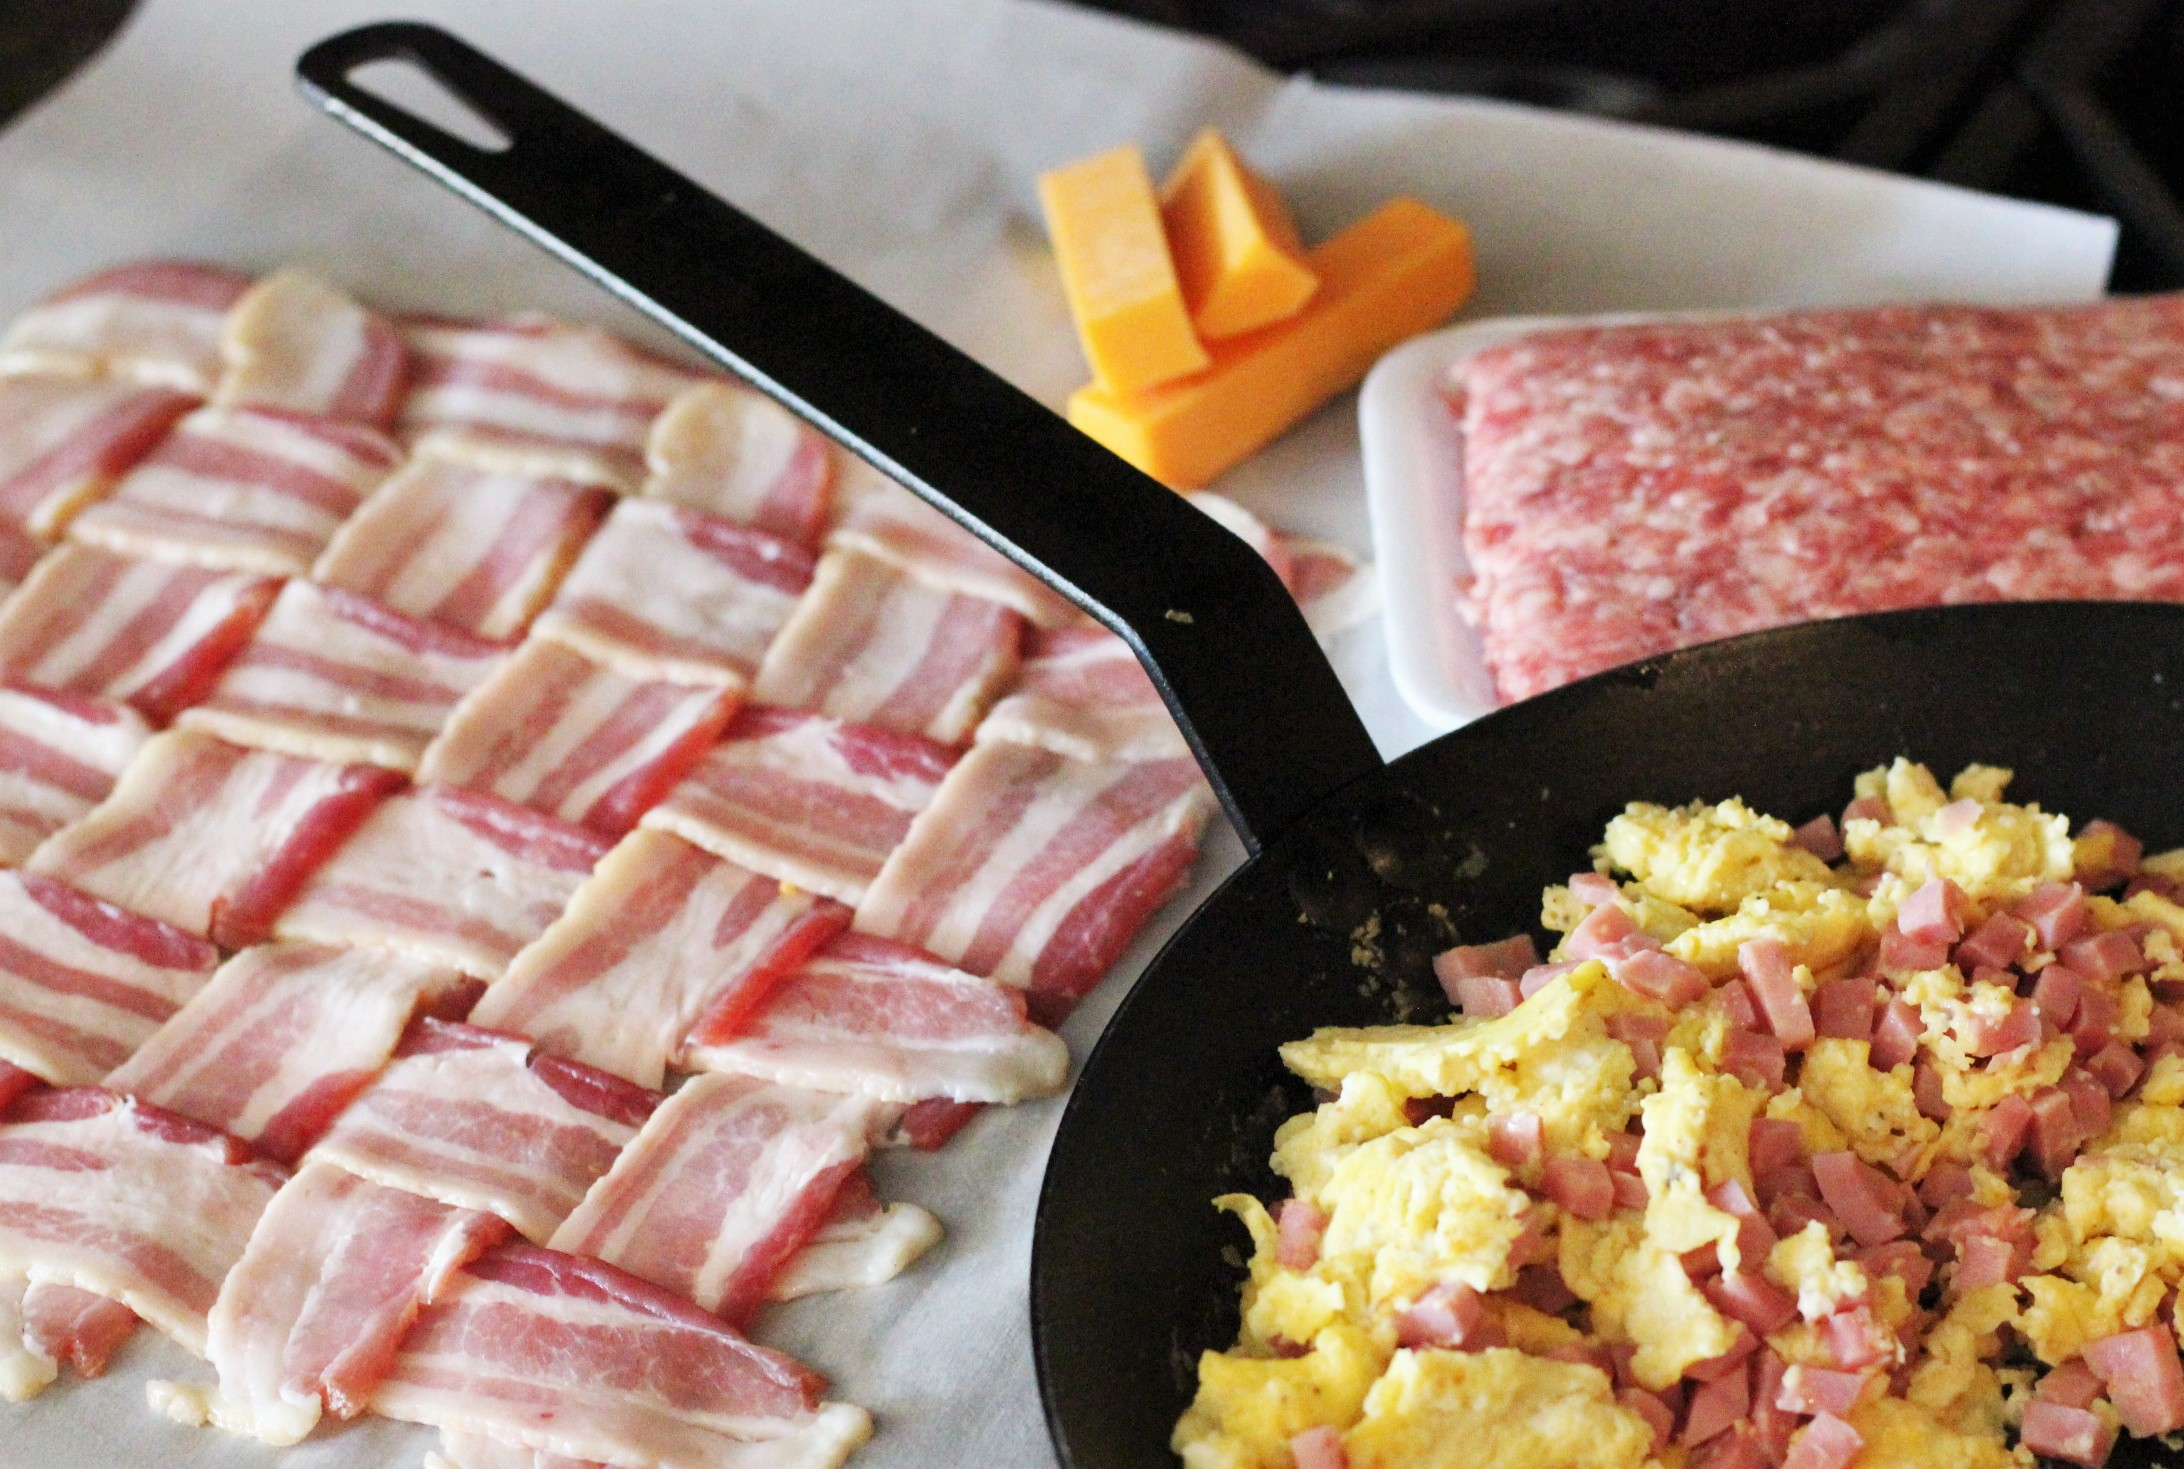 pan of eggs and ham next to a bacon weave on wax paper.